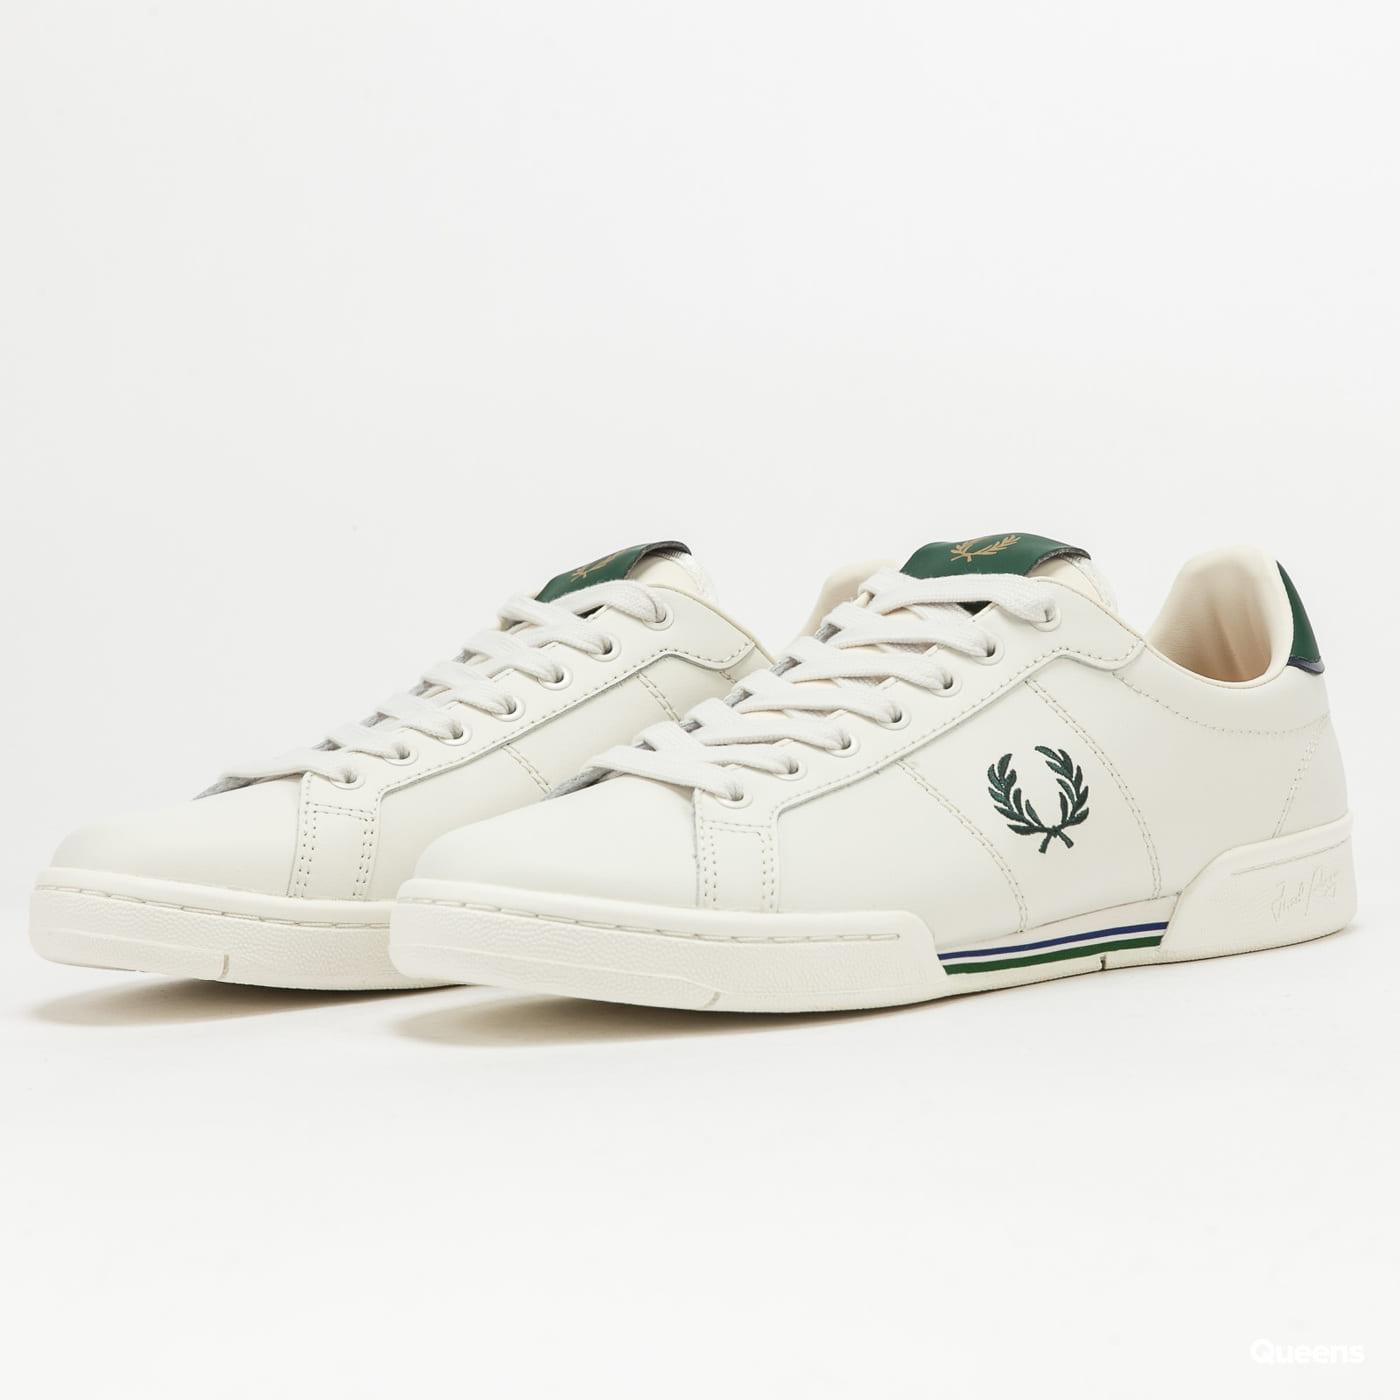 FRED PERRY B722 Leather porcelain